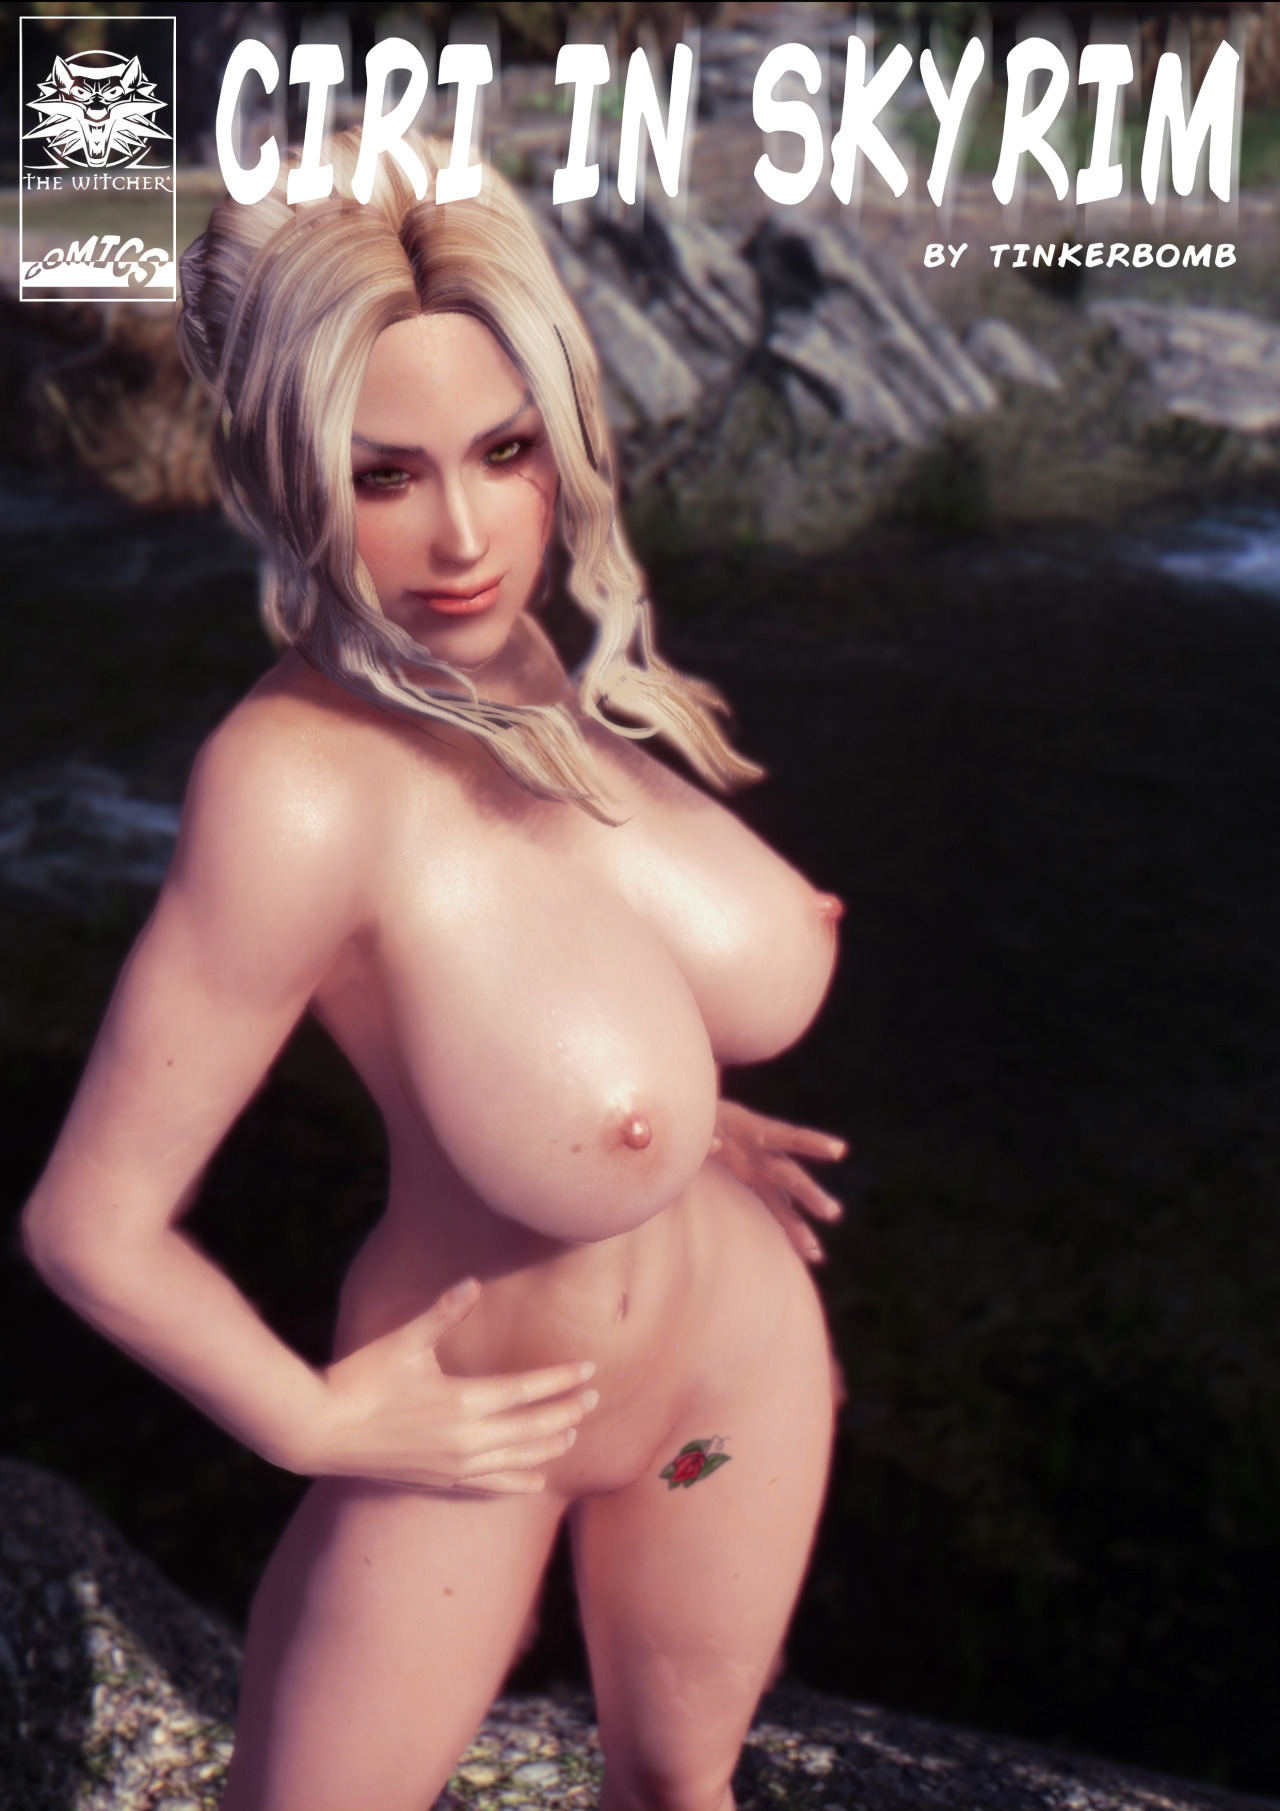 SureFap xxx porno The Witcher - [Tinkerbomb] - Ciri in Skyrim